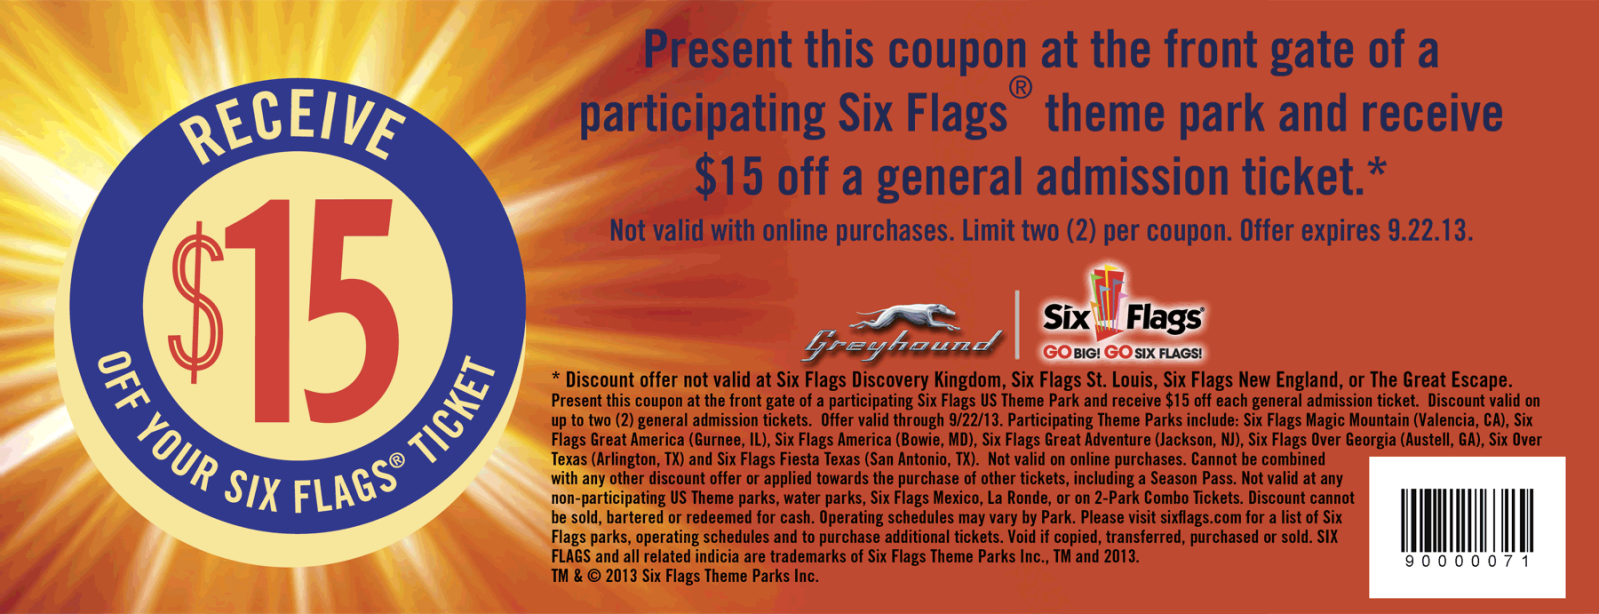 Pinned August 3rd 15 Off Your Tickets To Six Flags Theme Parks Coupon Via The Coupons App Printable Coupons Coupon Apps Coupons